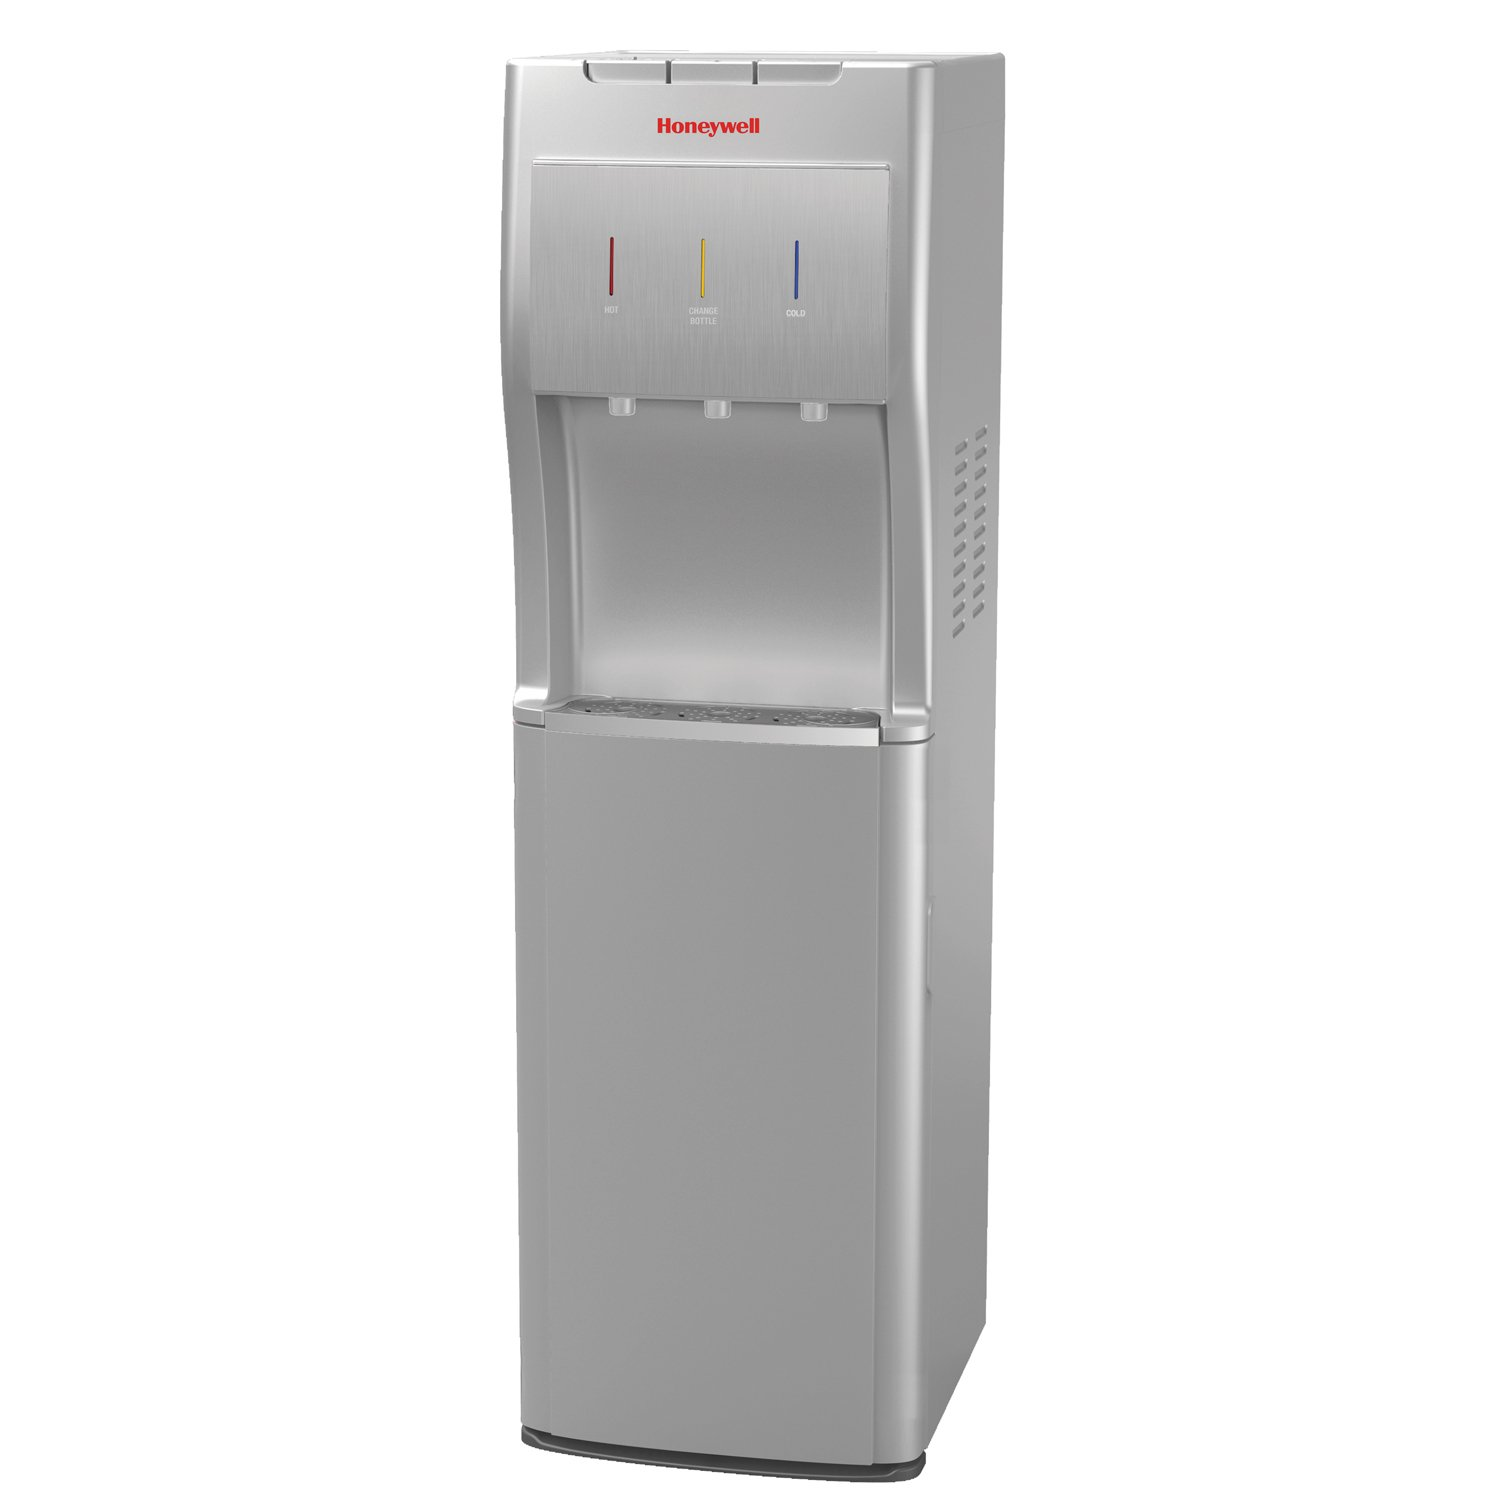 Honeywell HWBL1013S2 40-Inch Freestanding Bottom Loading Water Cooler Dispenser with Hot, Room and Cold Temperatures with Superior Water Pump, Silver